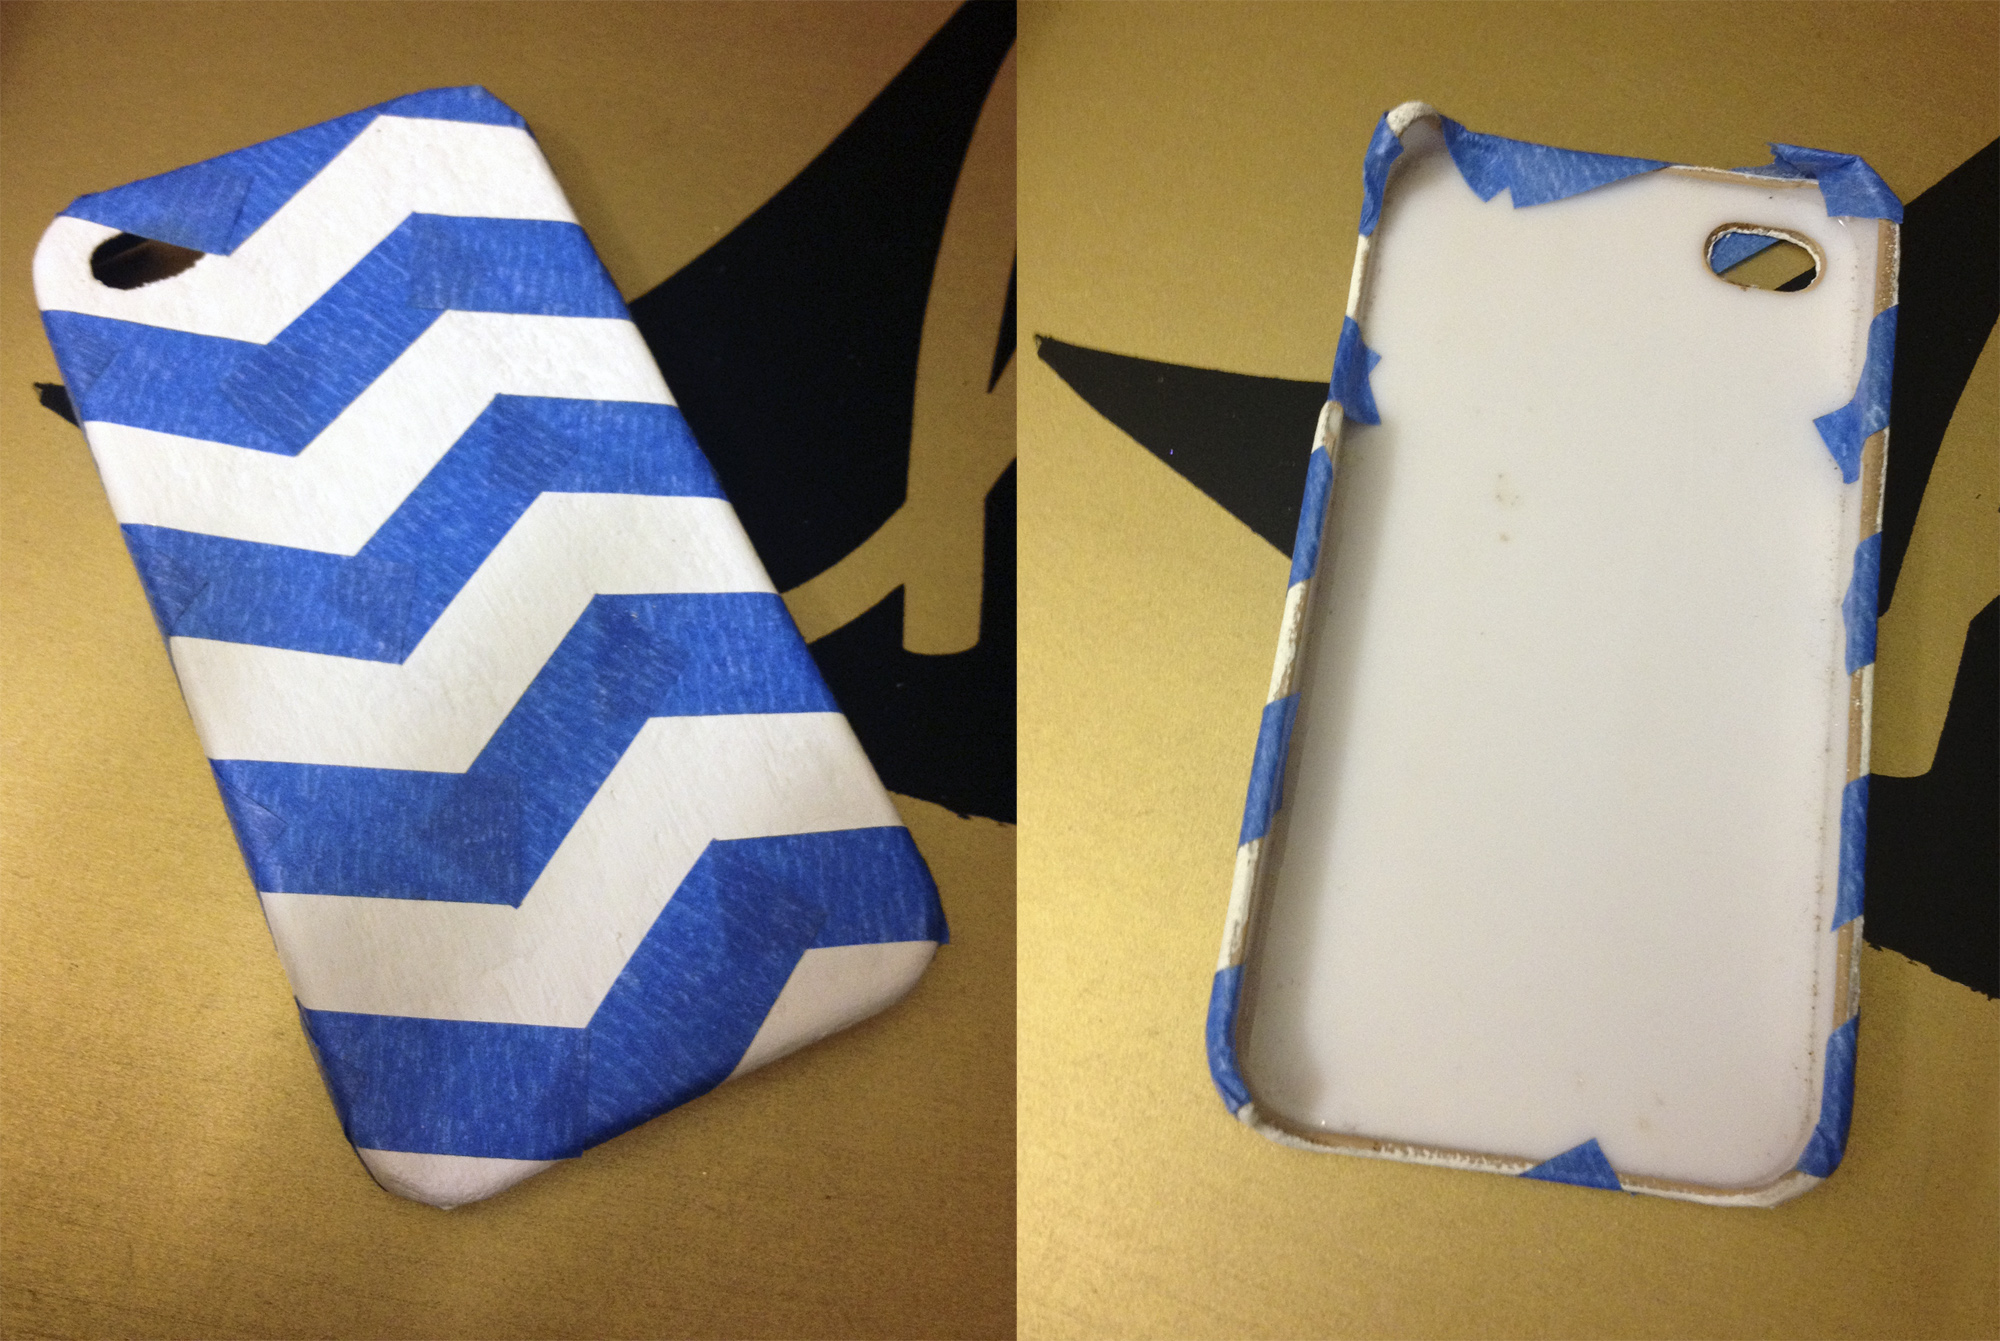 phone case makeover - tape off a chevron pattern